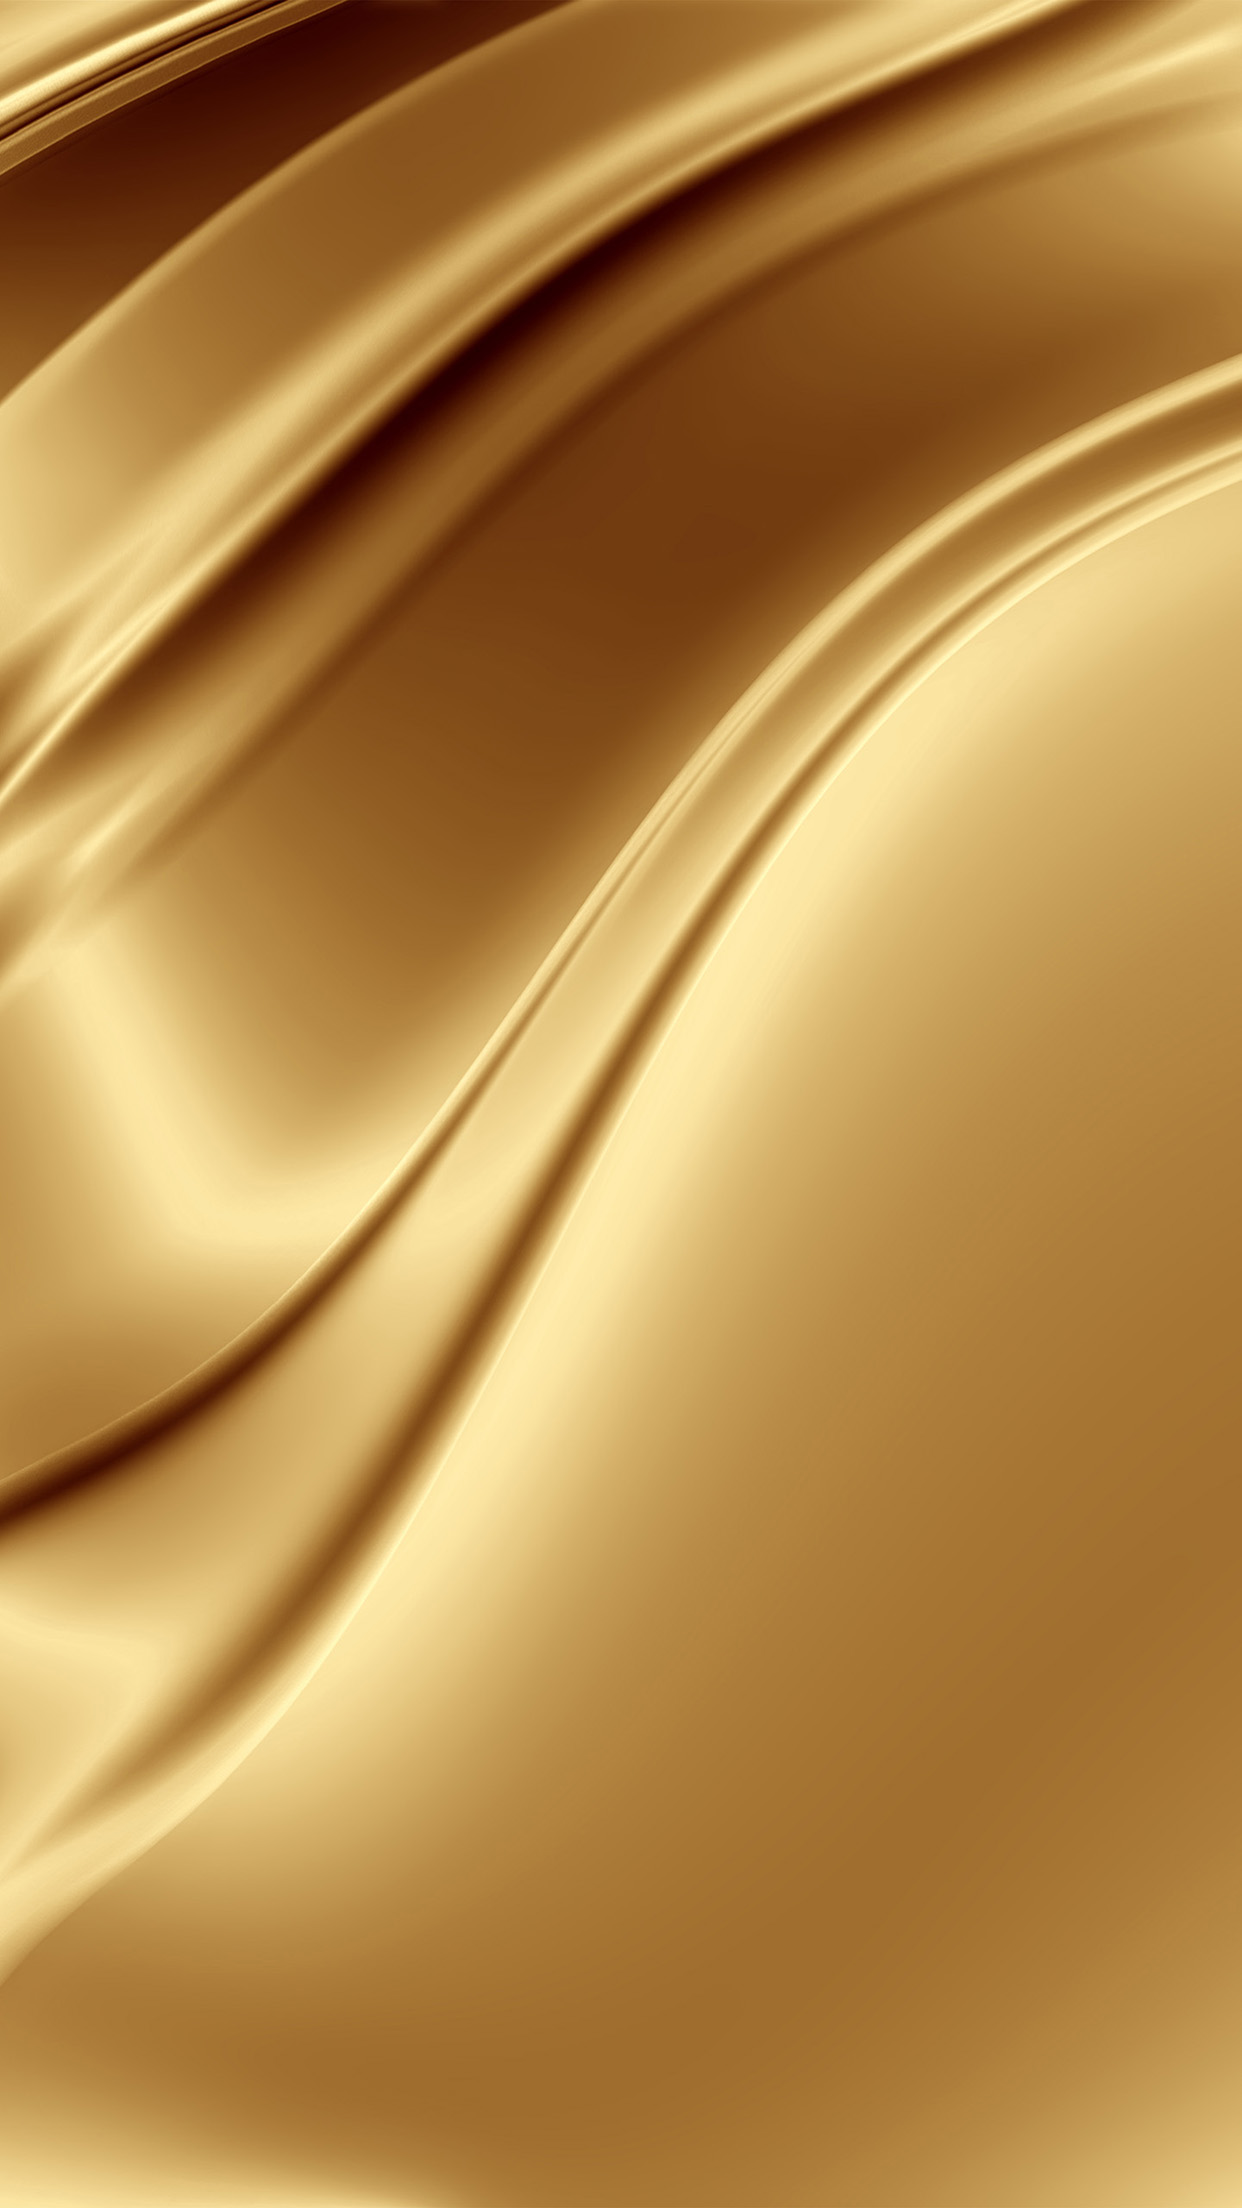 amazing iphone 6 gold wallpaper